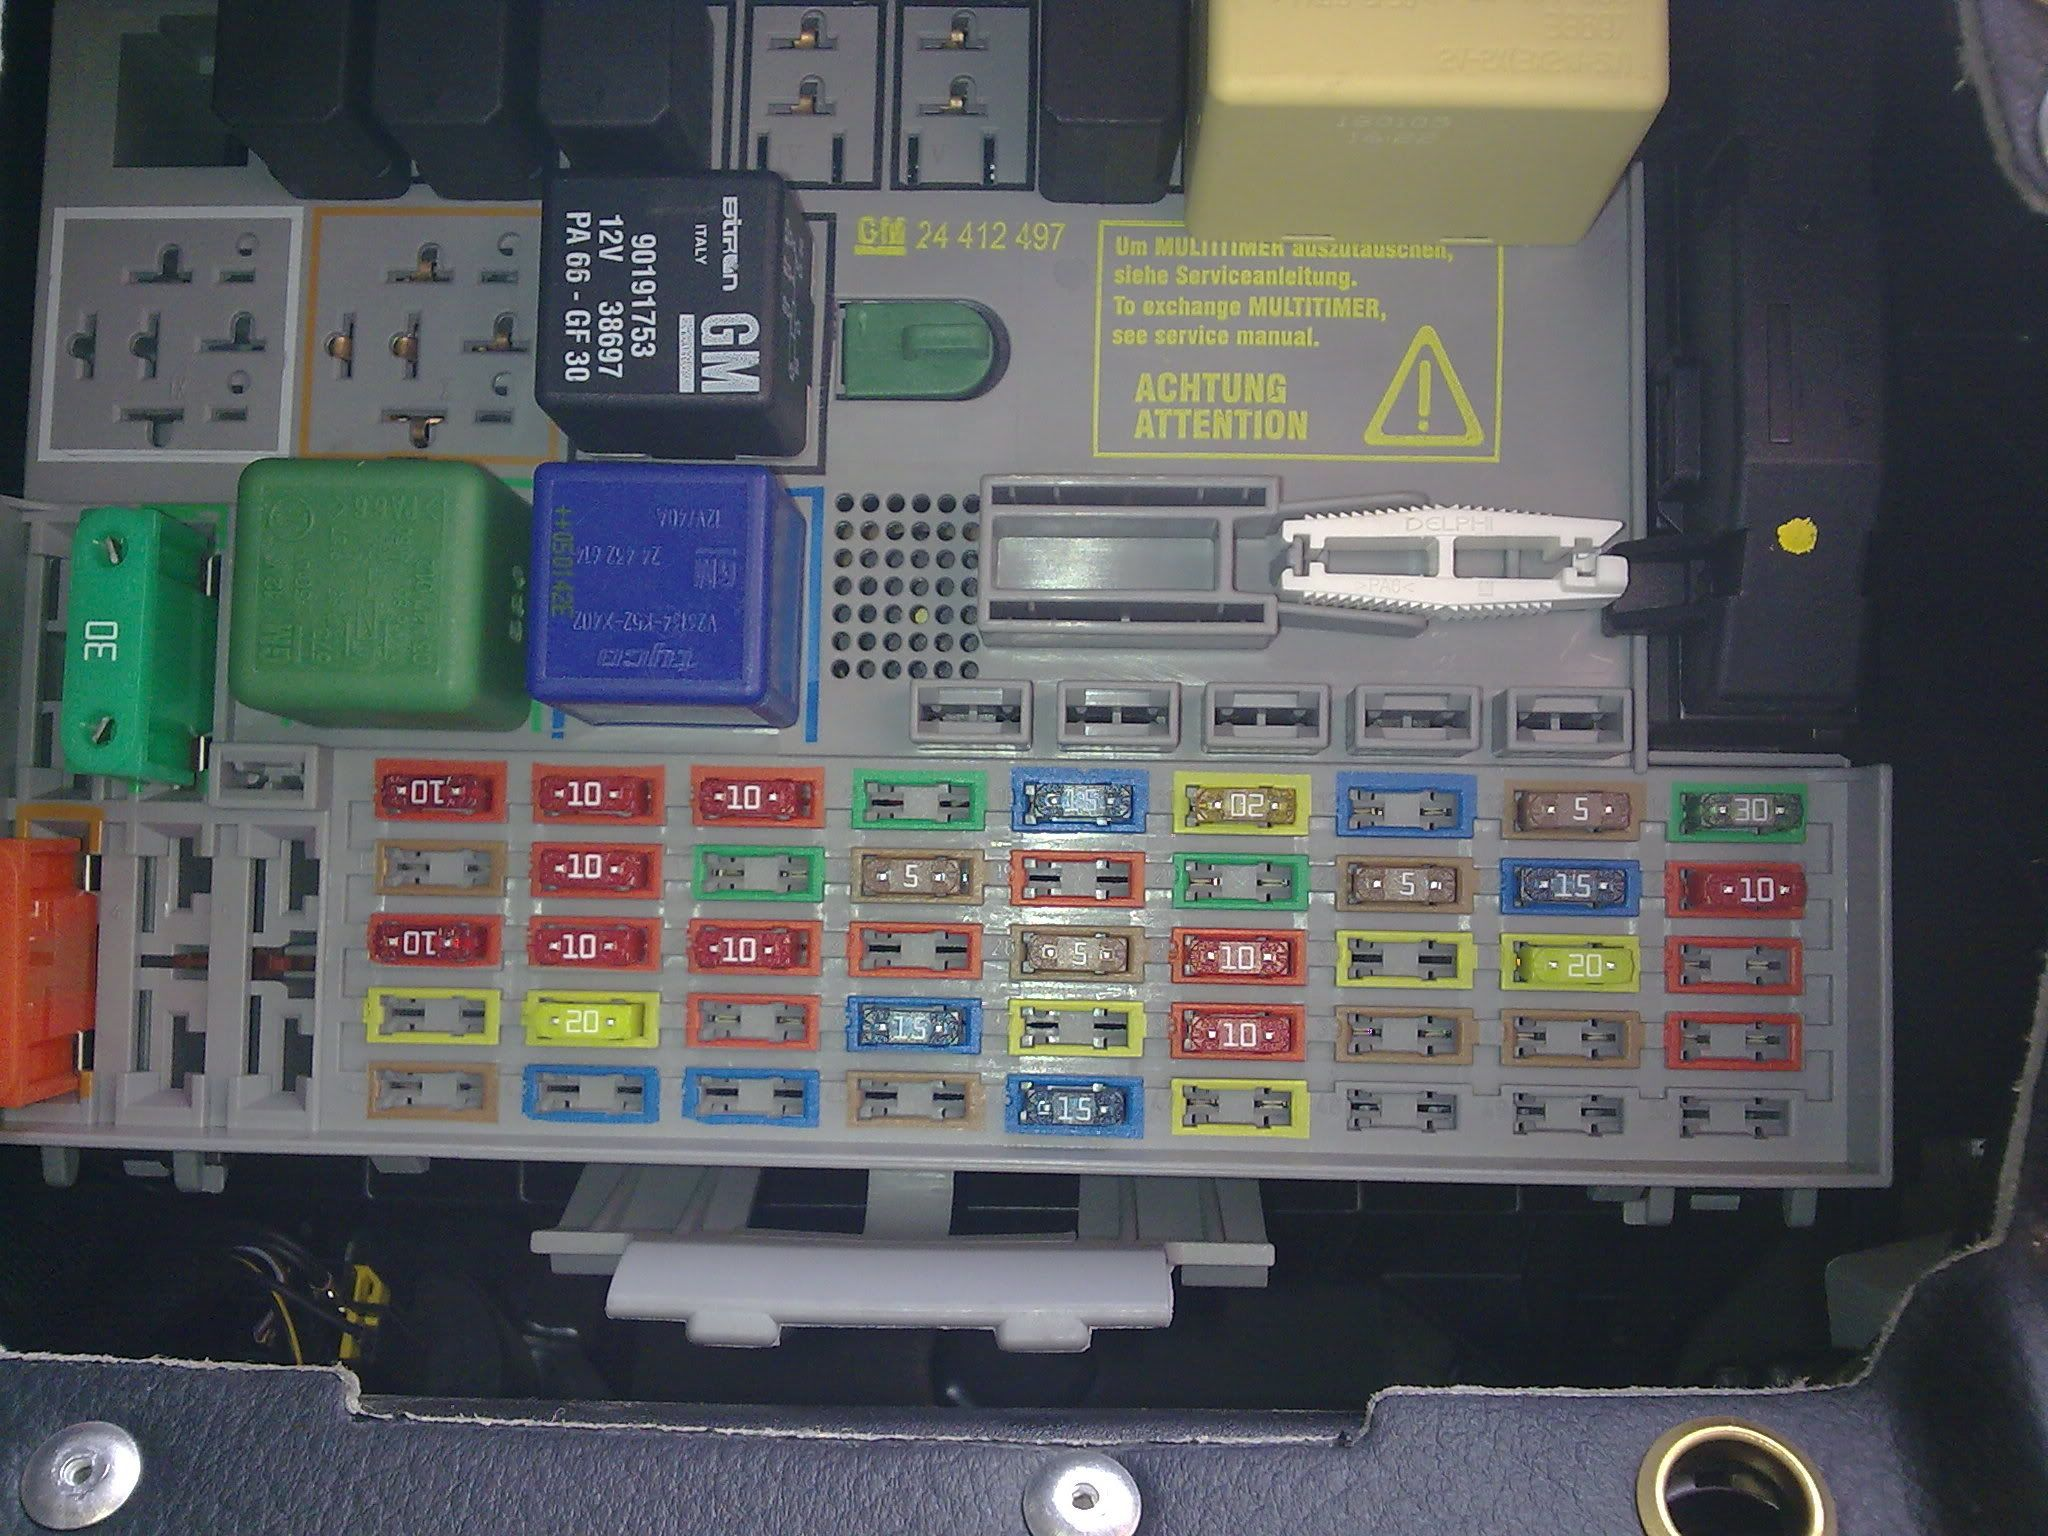 81cc4b547515edcd7c4059702fd3c90a img photobucket com albums v333 leesturbo image597 jpg vauxhall zafira fuse box diagram 2004 at virtualis.co